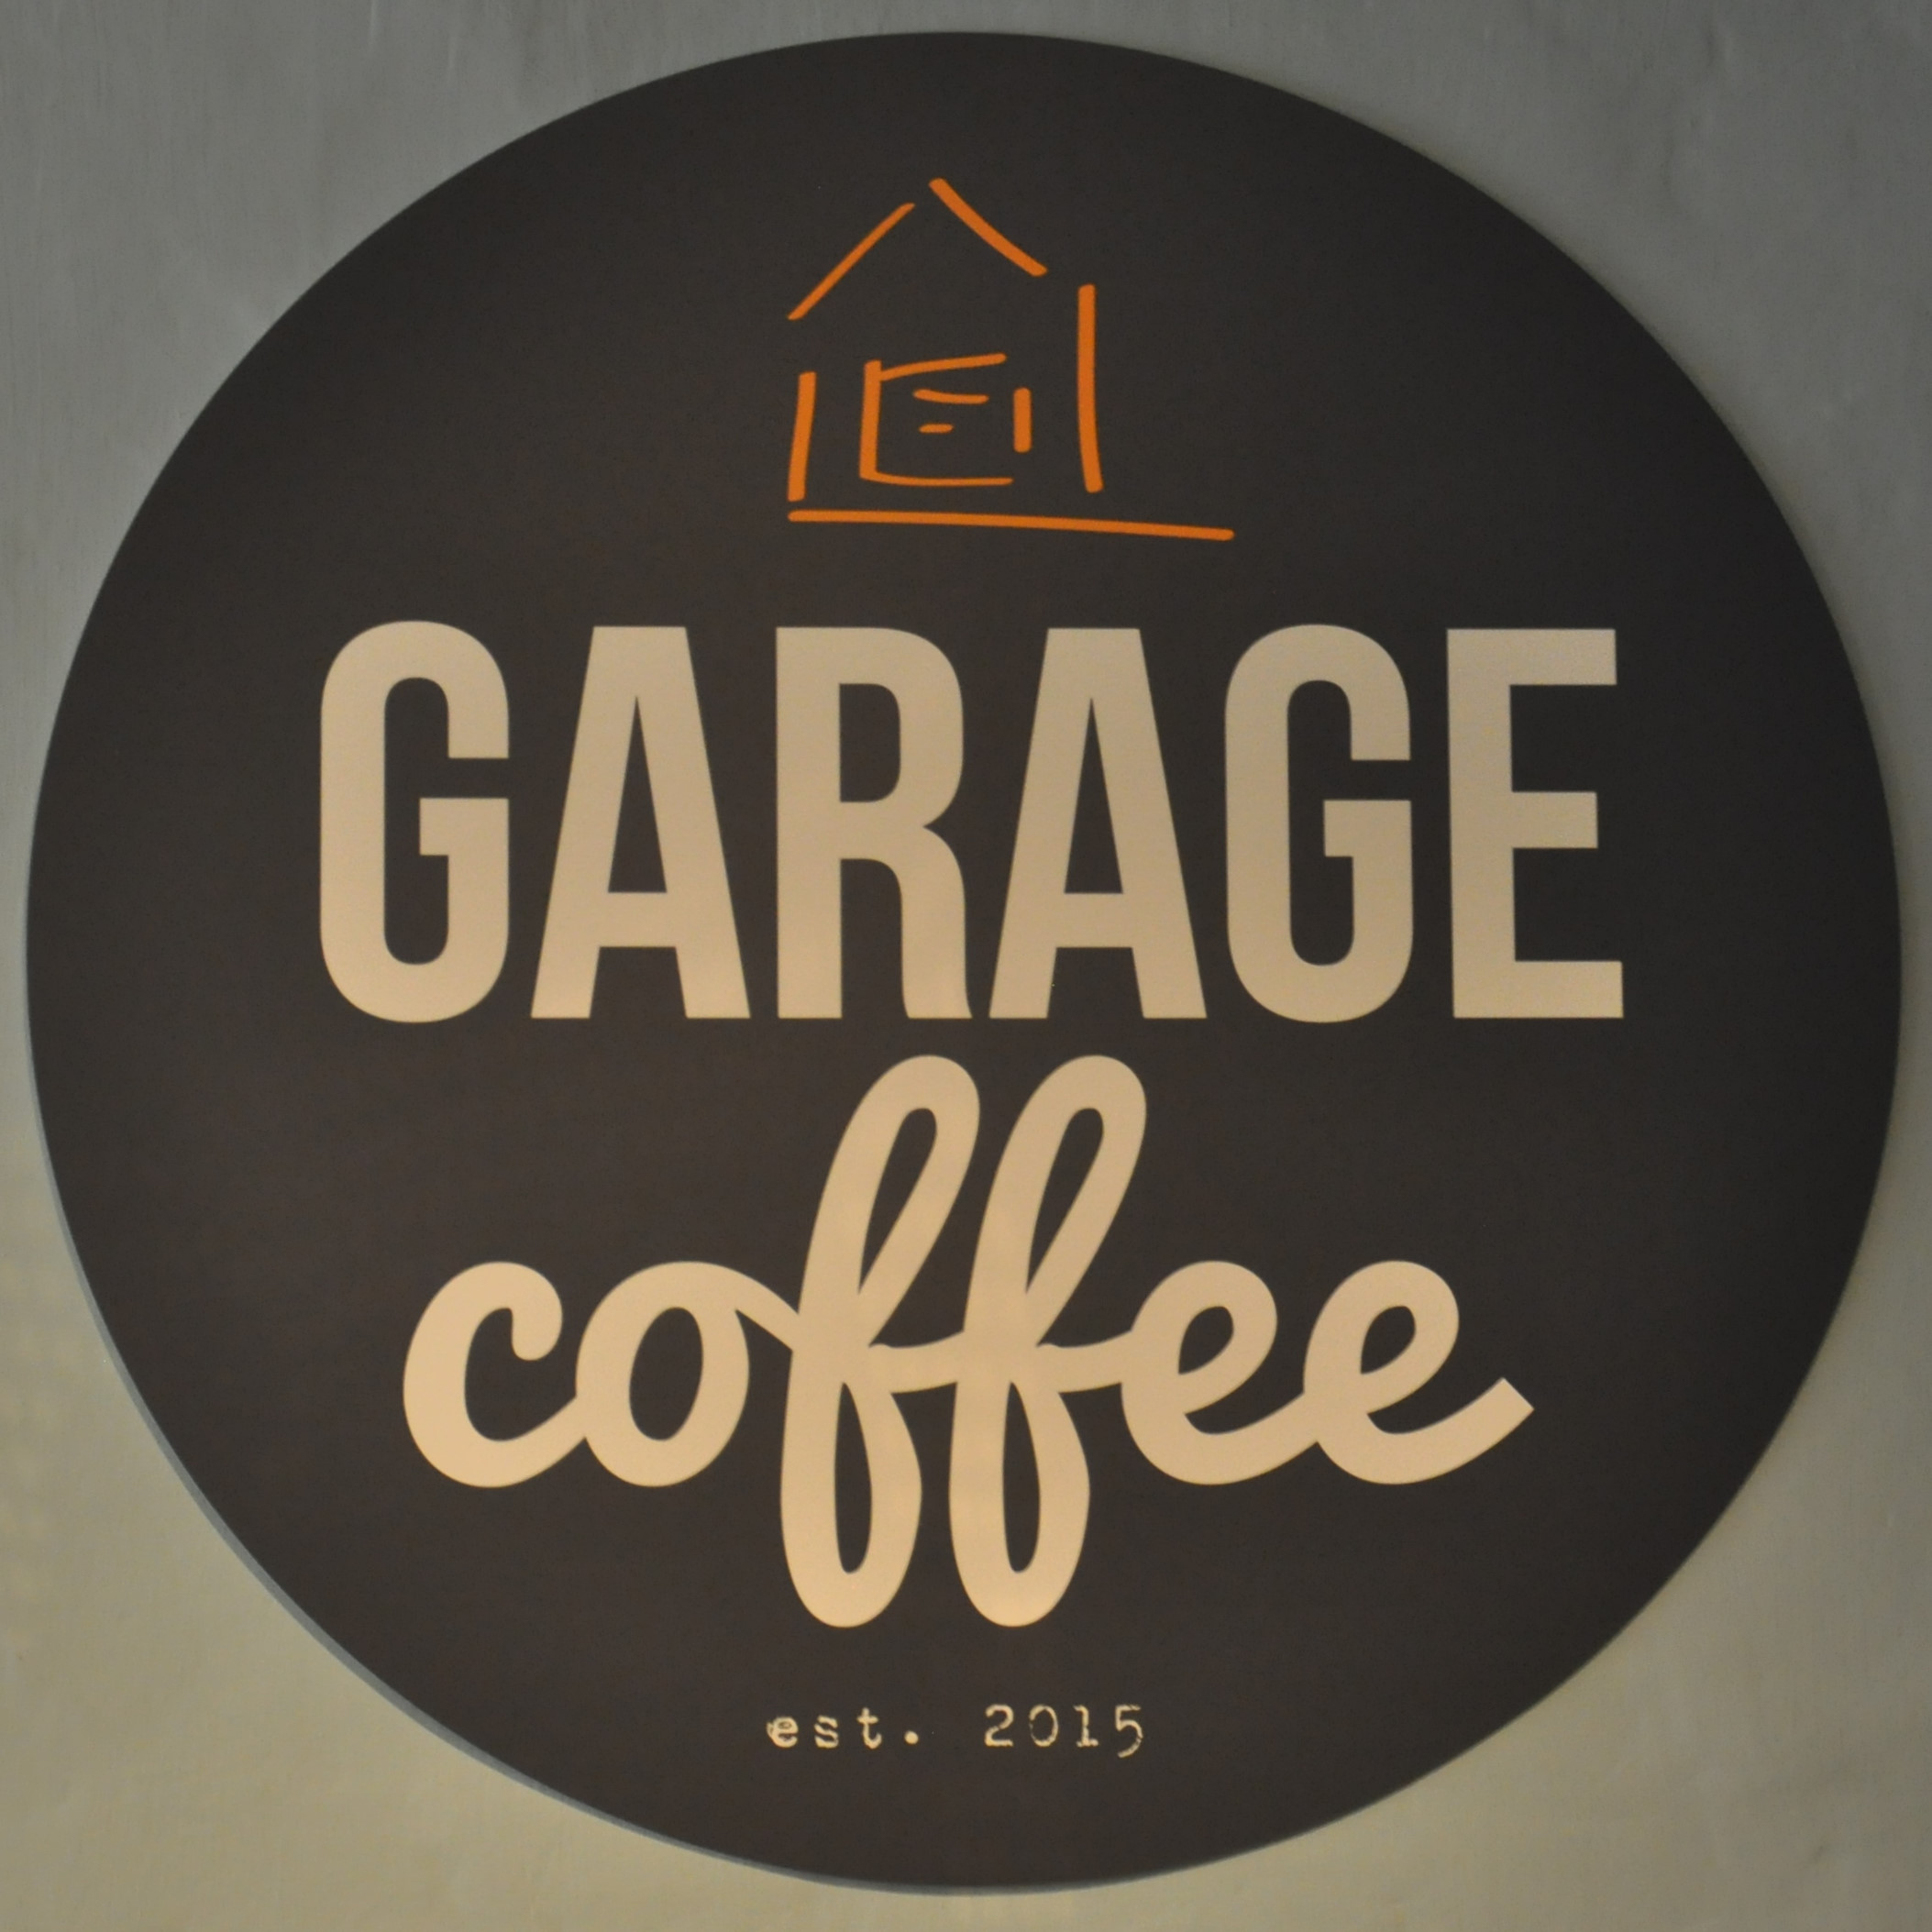 The Garage Coffee logo from the cafe inside the Fruitworks Coworking space in Canterbury.